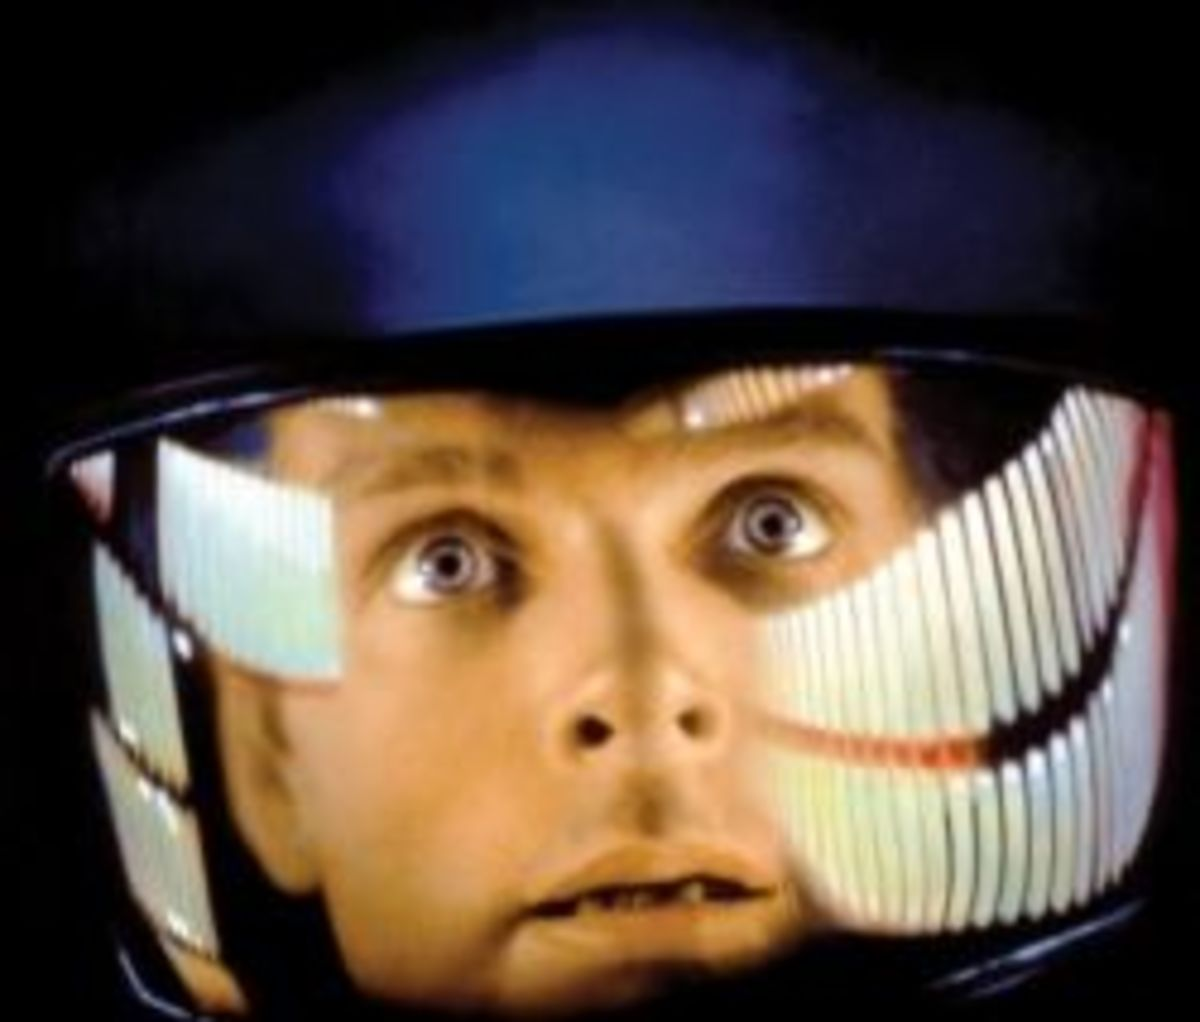 The Top 17 Scientifically Accurate Science Fiction Movies